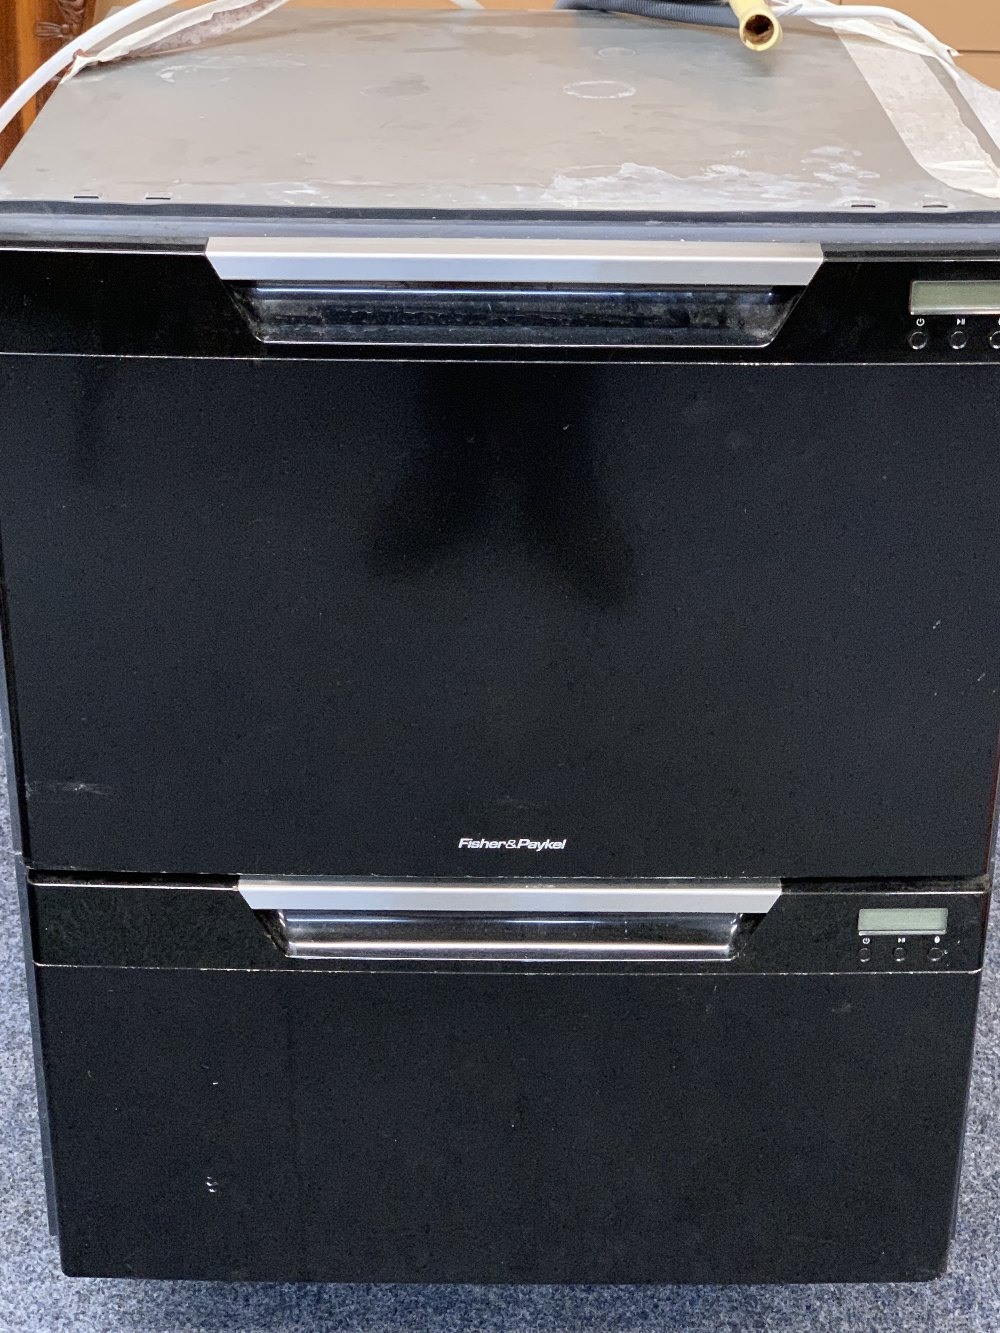 FISHER & PAYKEL INTEGRATED DISHWASHER WITH BLACK FRONT - 90cms H, 60cms W, 60cms D E/T